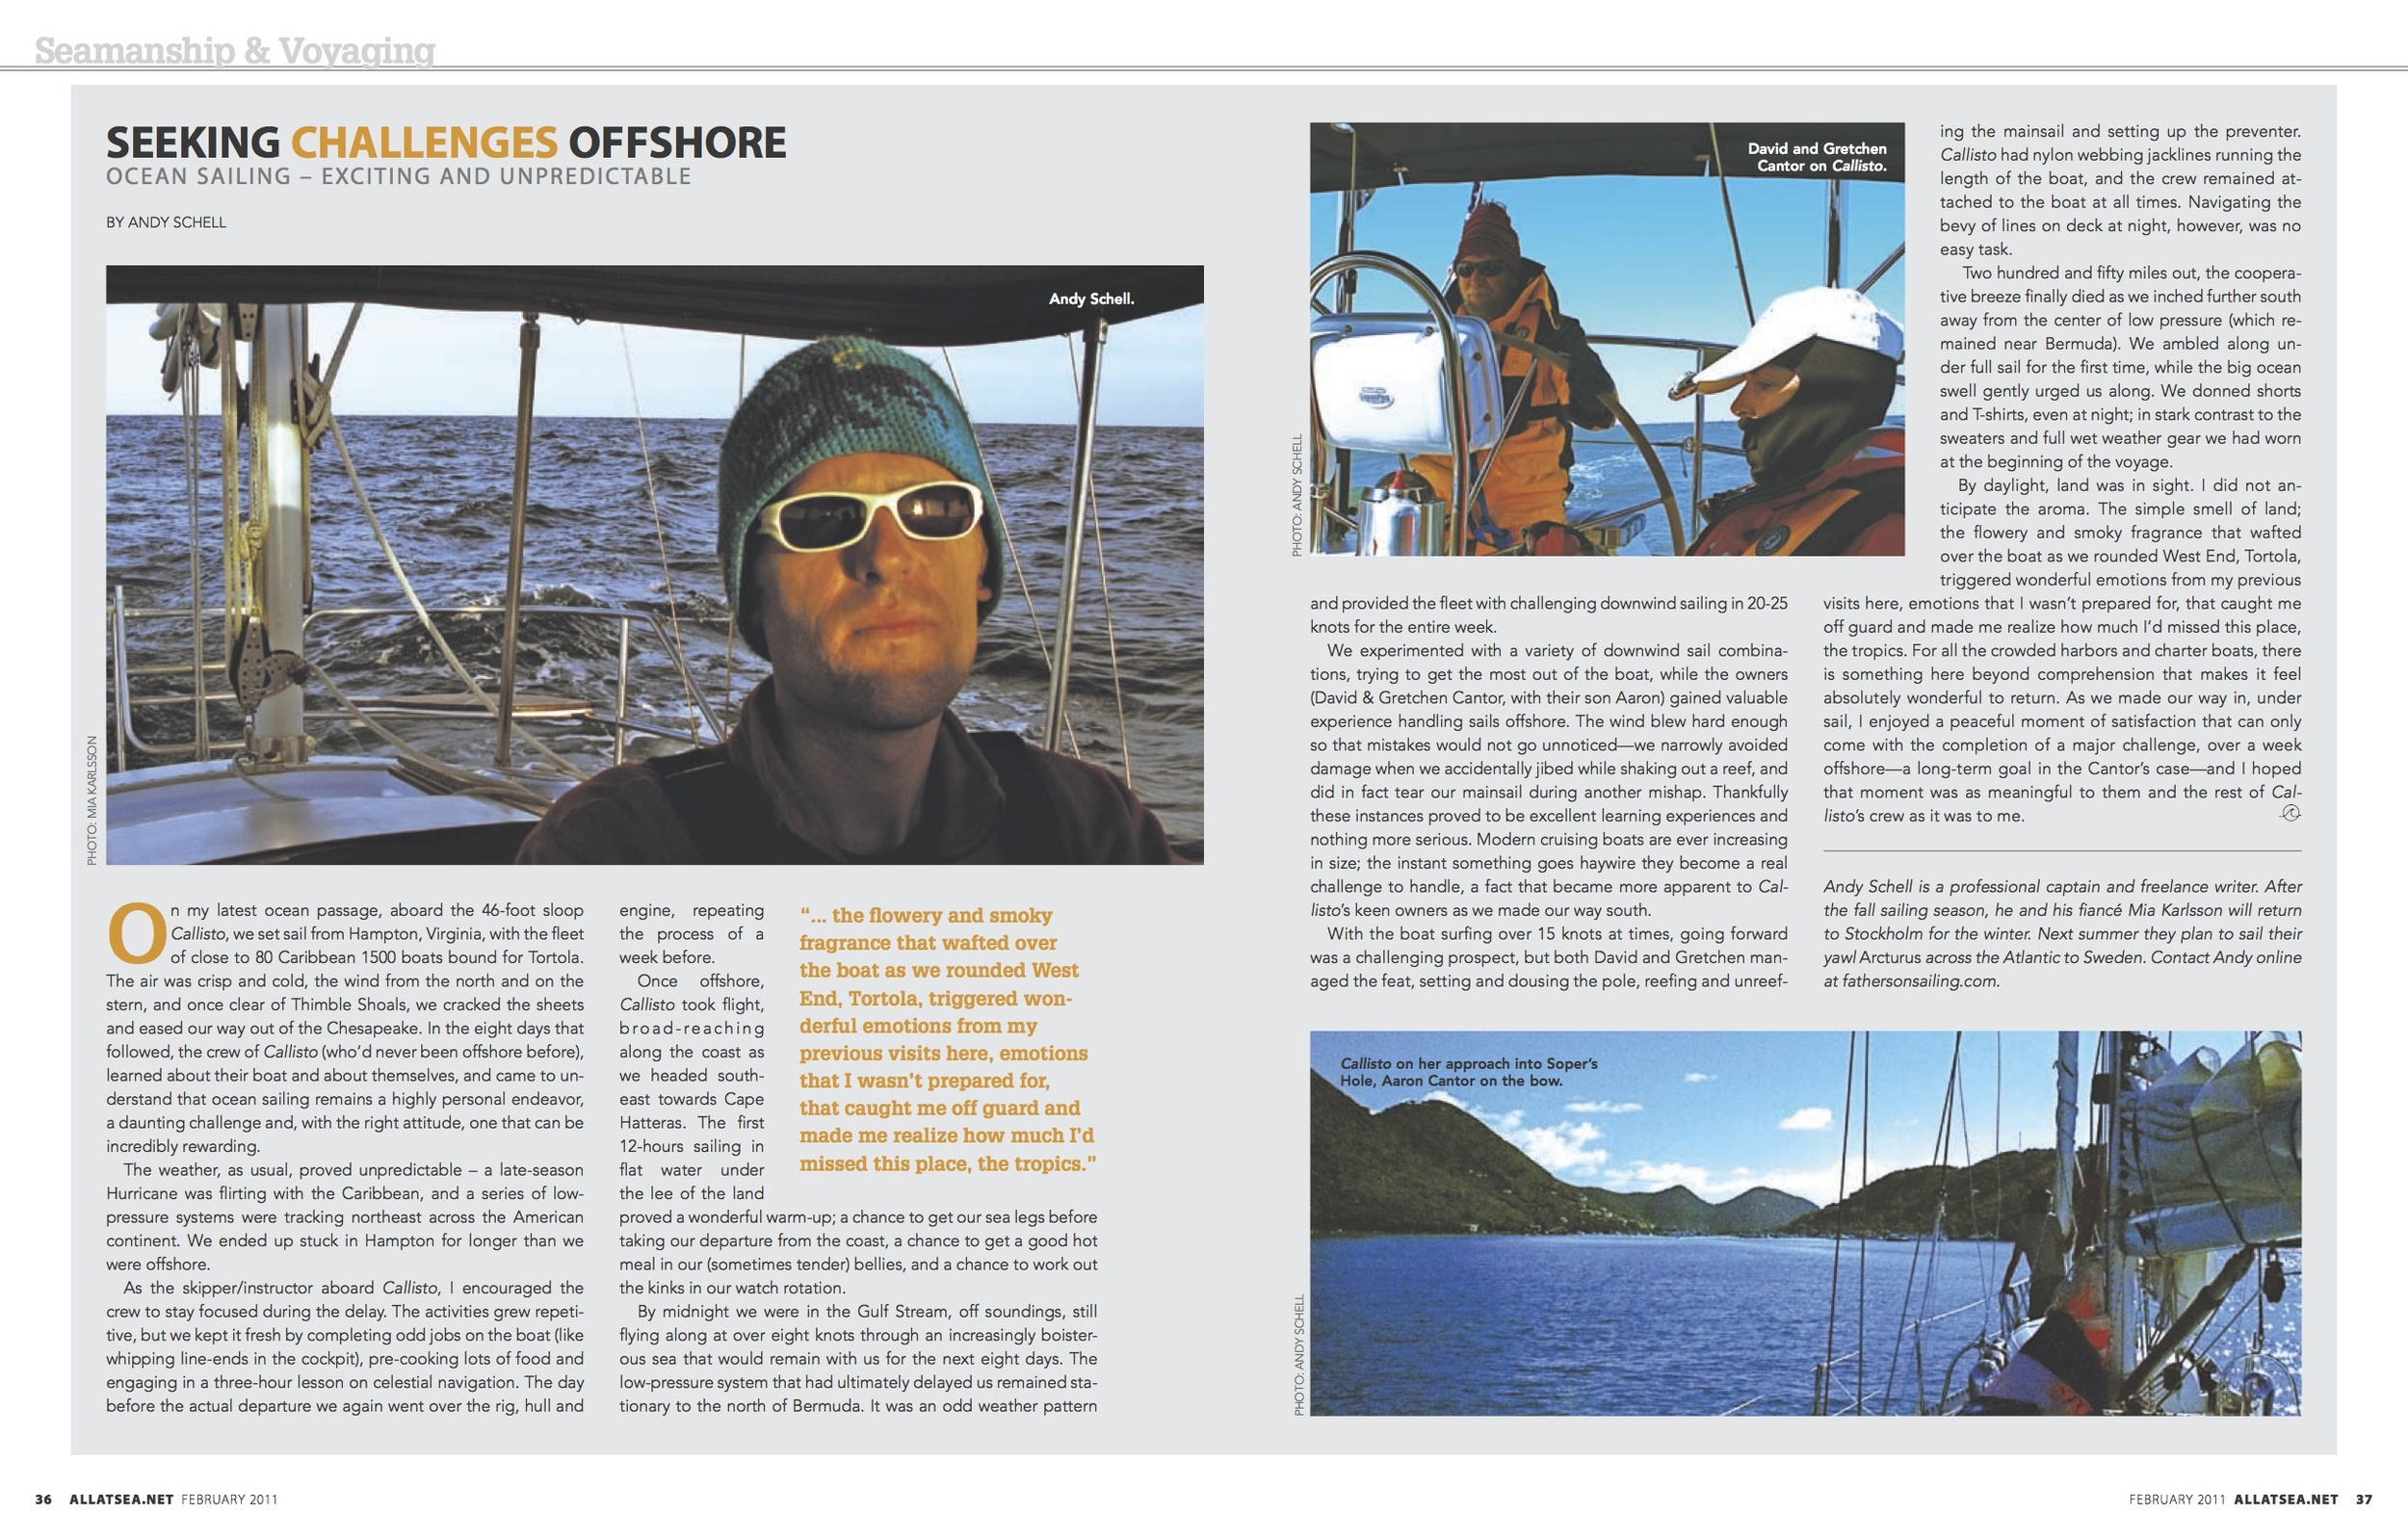 February 2011, Seeking Challenges Offshore